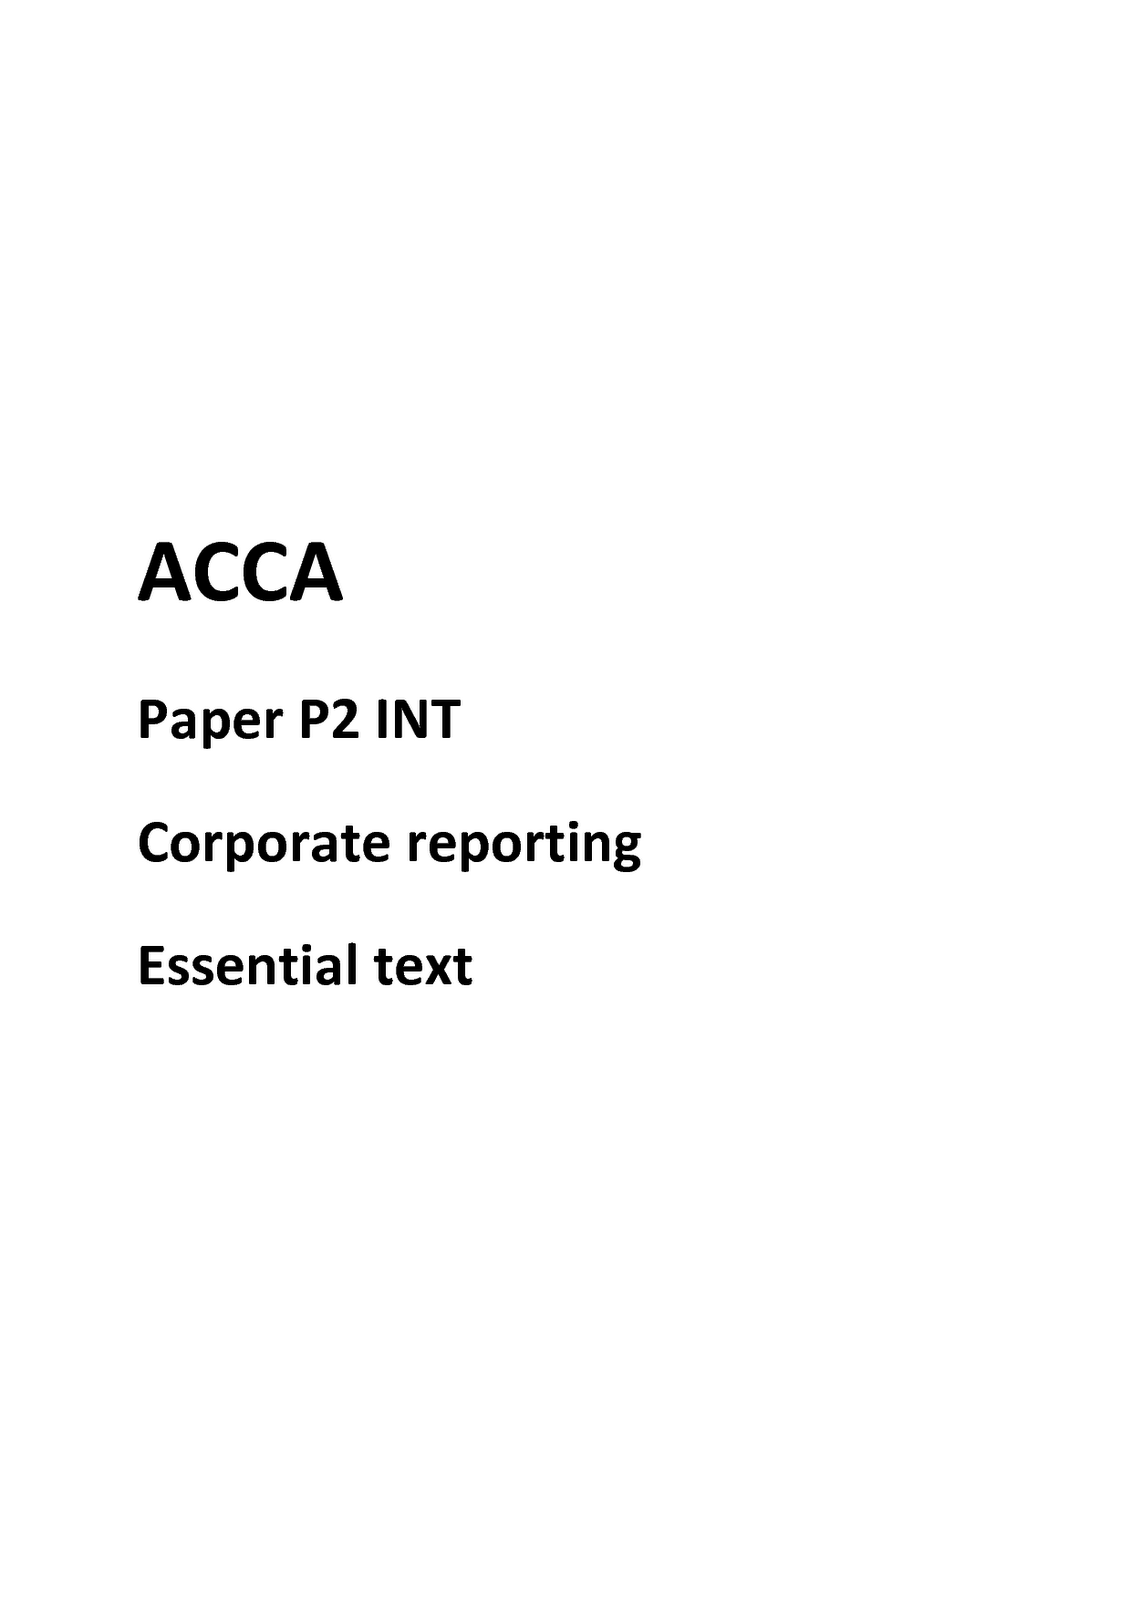 Acca Books Free Download http://accountantpk.blogspot.com/2011/12/book-acca-p2-corporate-reporting-kaplan.html